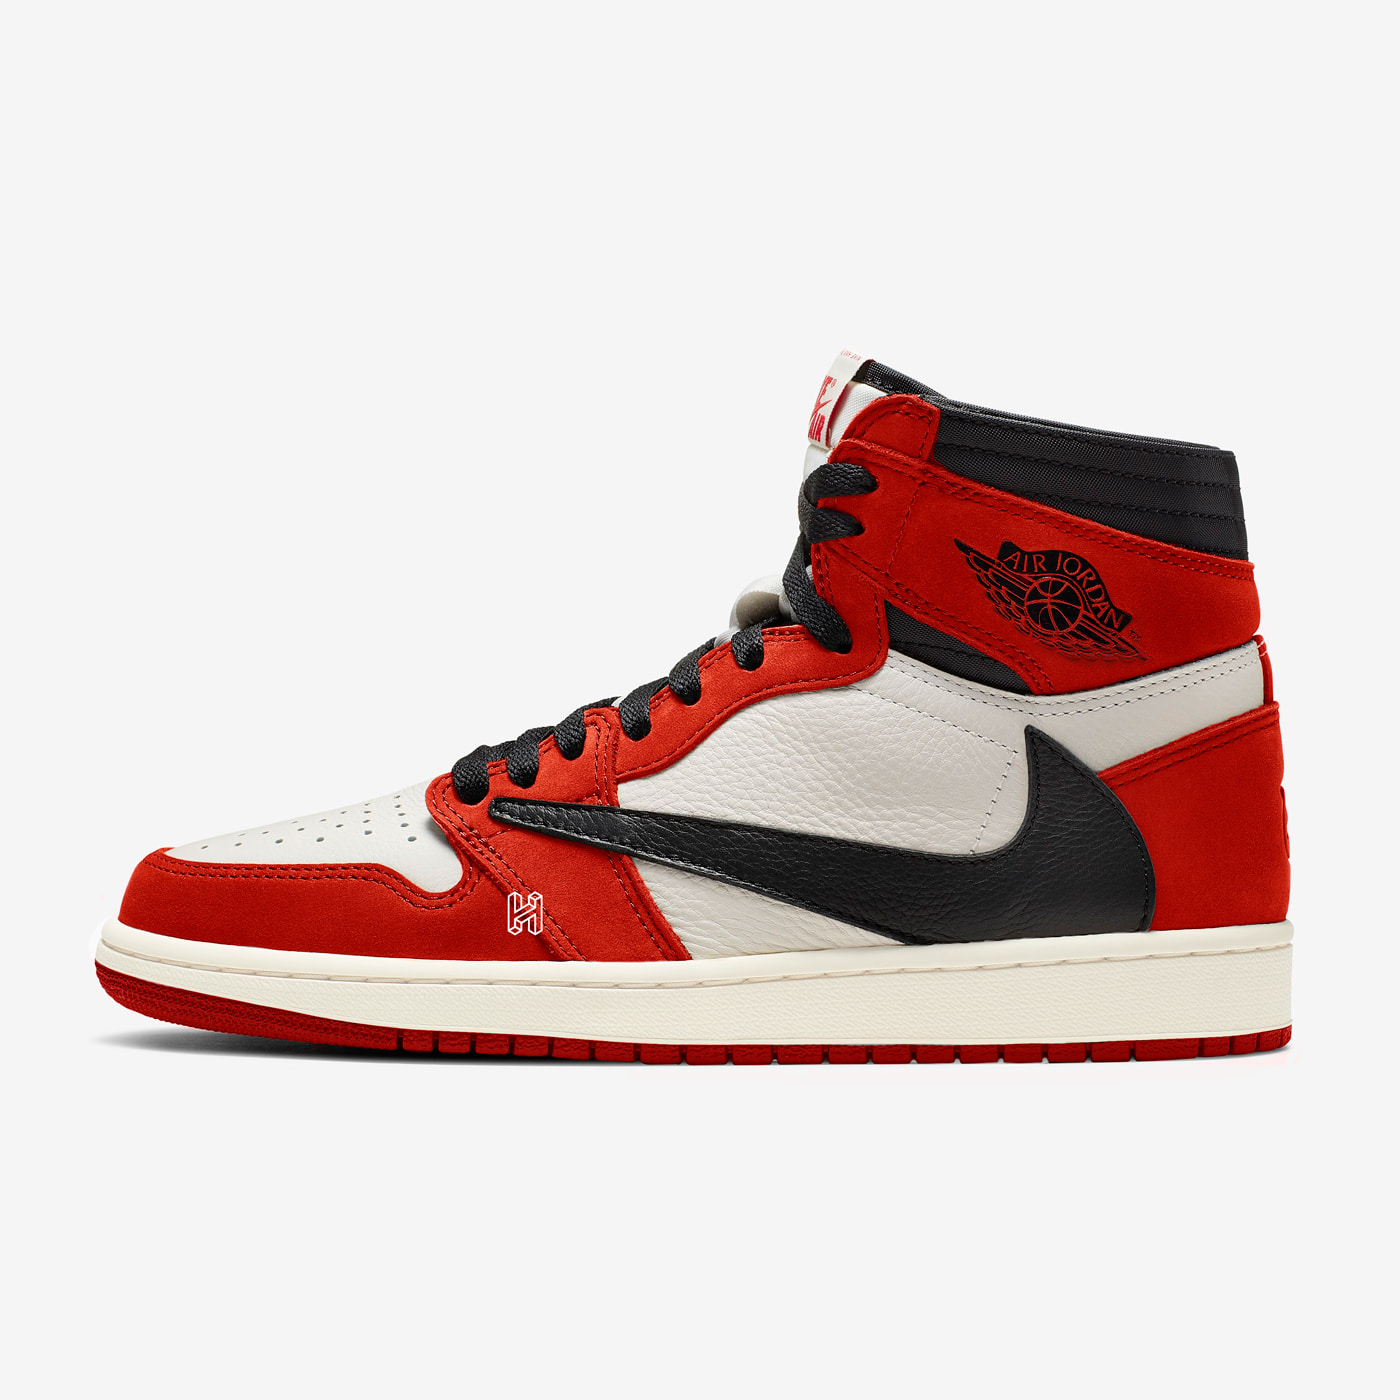 a44c693aa5d1 Be sure to check out our Release Calendar to stay up to date with sneaker  release dates